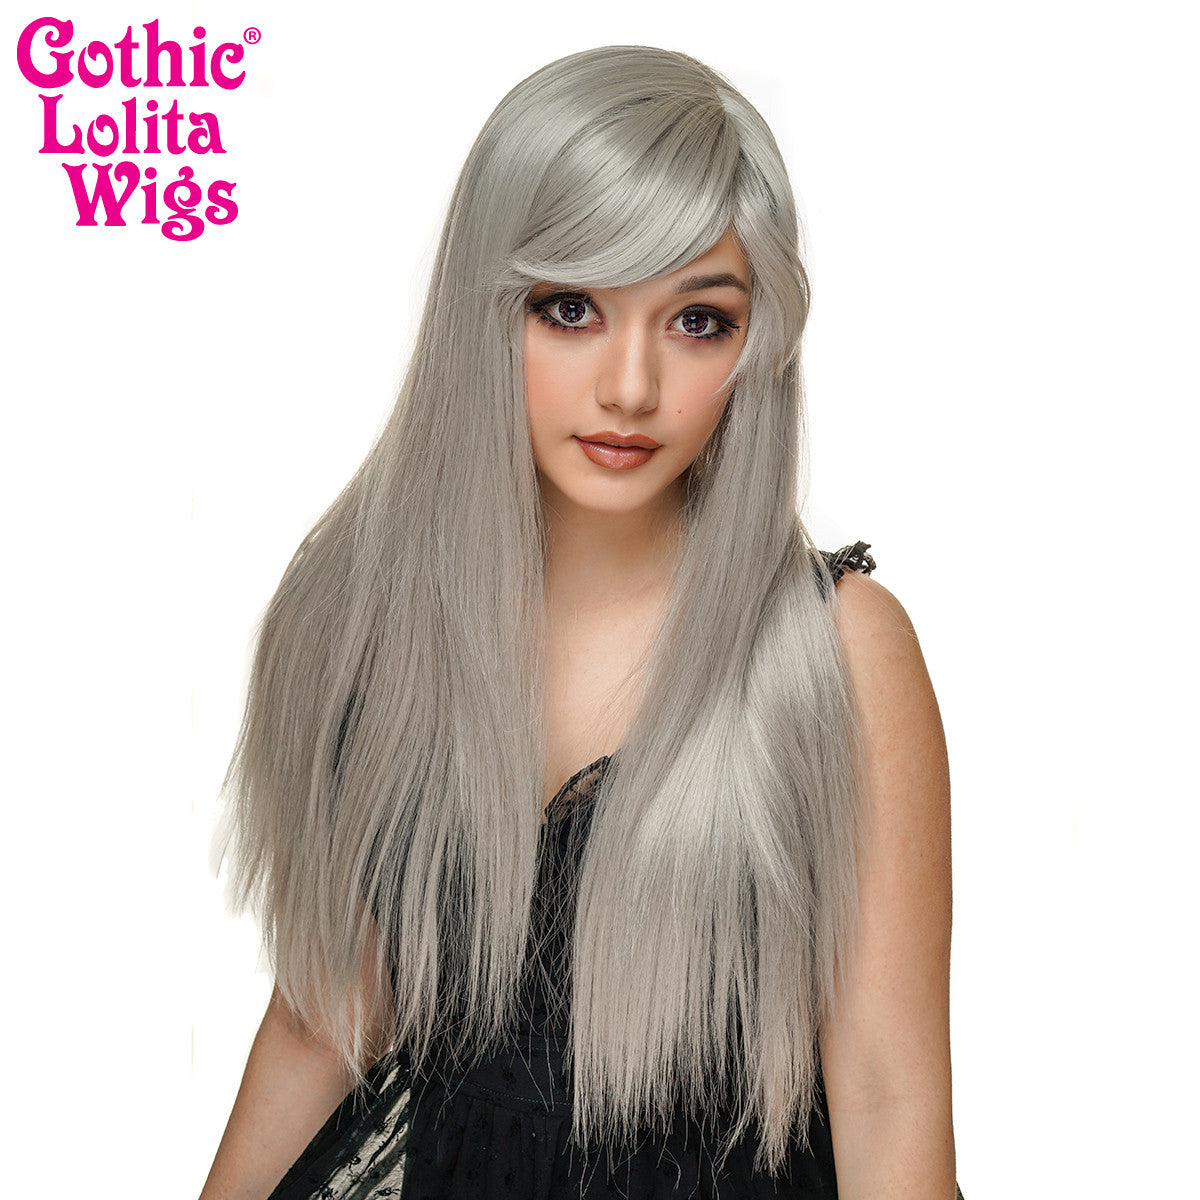 Gothic Lolita Wigs® <br> Bella™ Collection - Silver - 00684